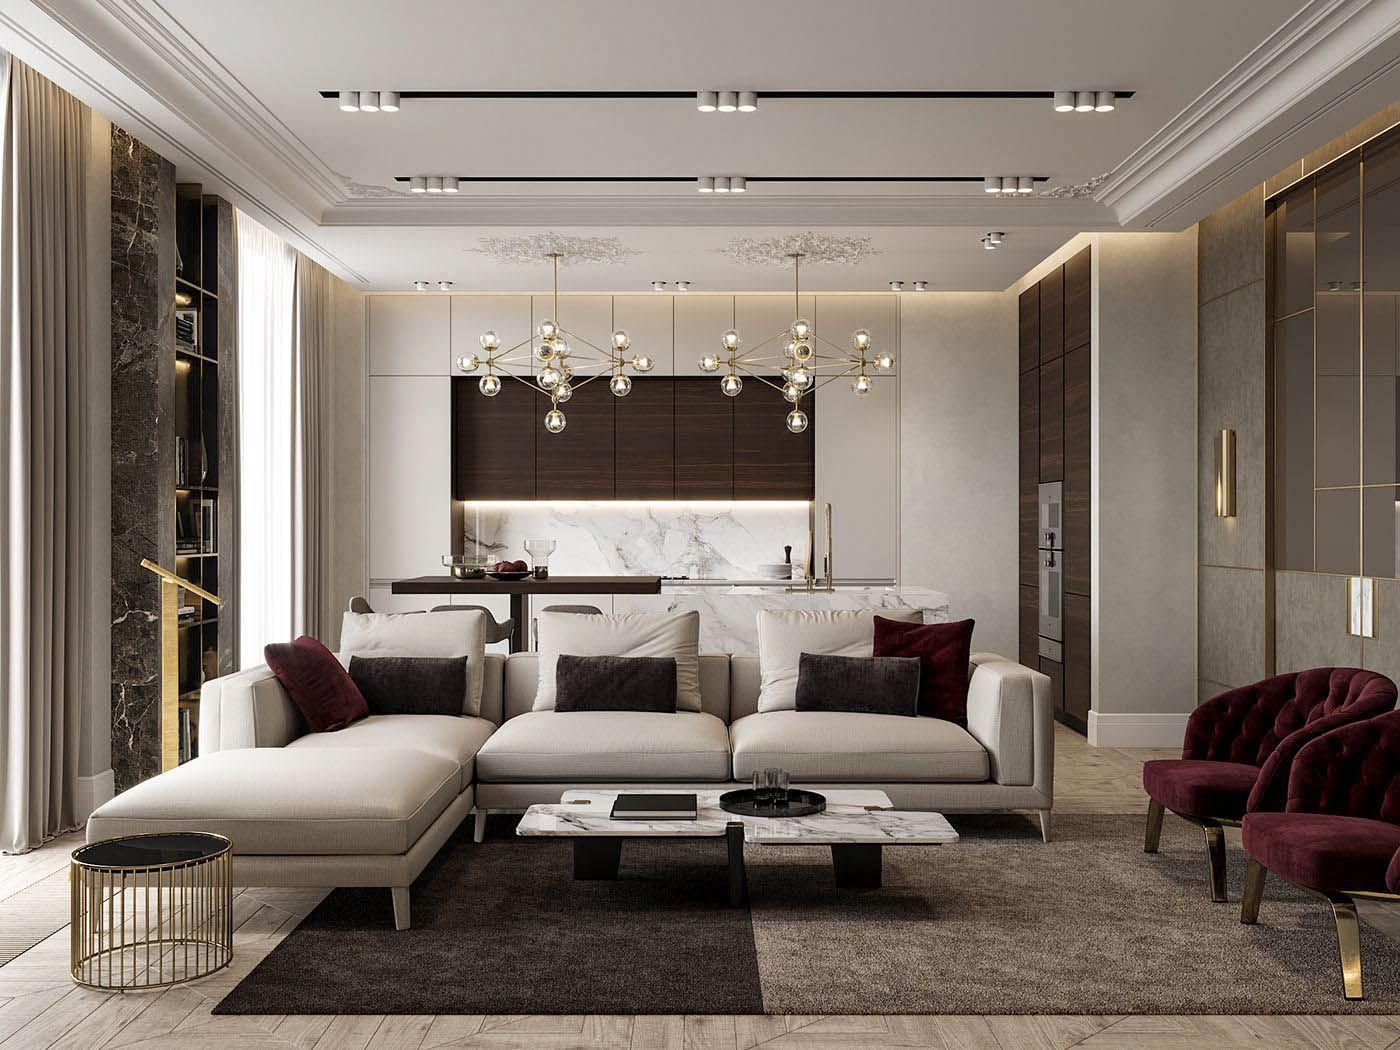 White and brown combination of the modern spacious living and dining room in one